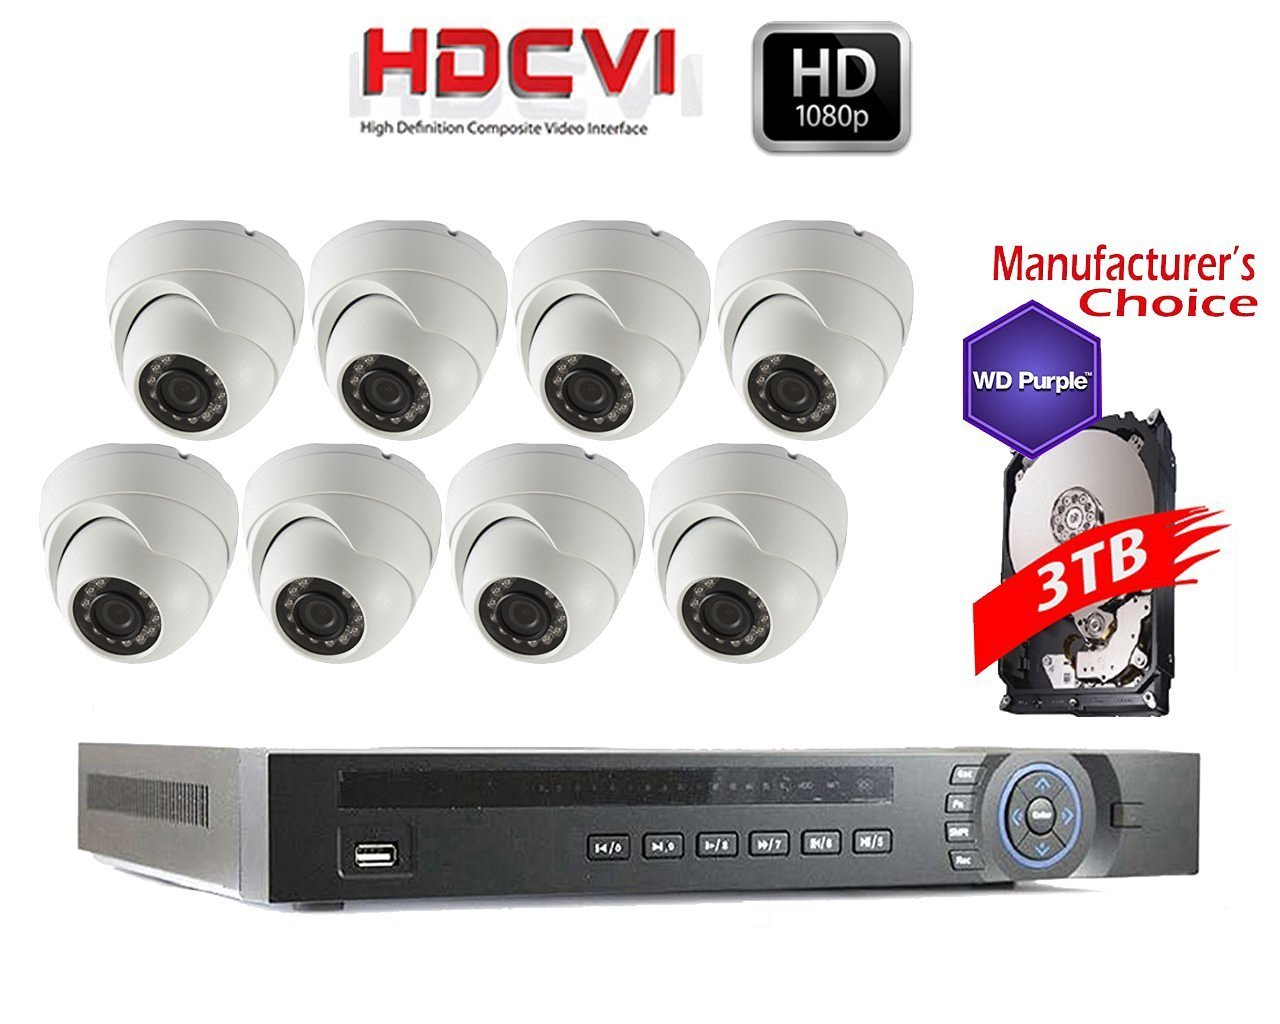 iCare 1080P Package: 16CH HDCVI DVR 3TB WD Purple HDD Pre-installed + 8 x 2MP IR Waterproof Mini Dome Camera, 3.6mm, 2 years warranty, Local Support